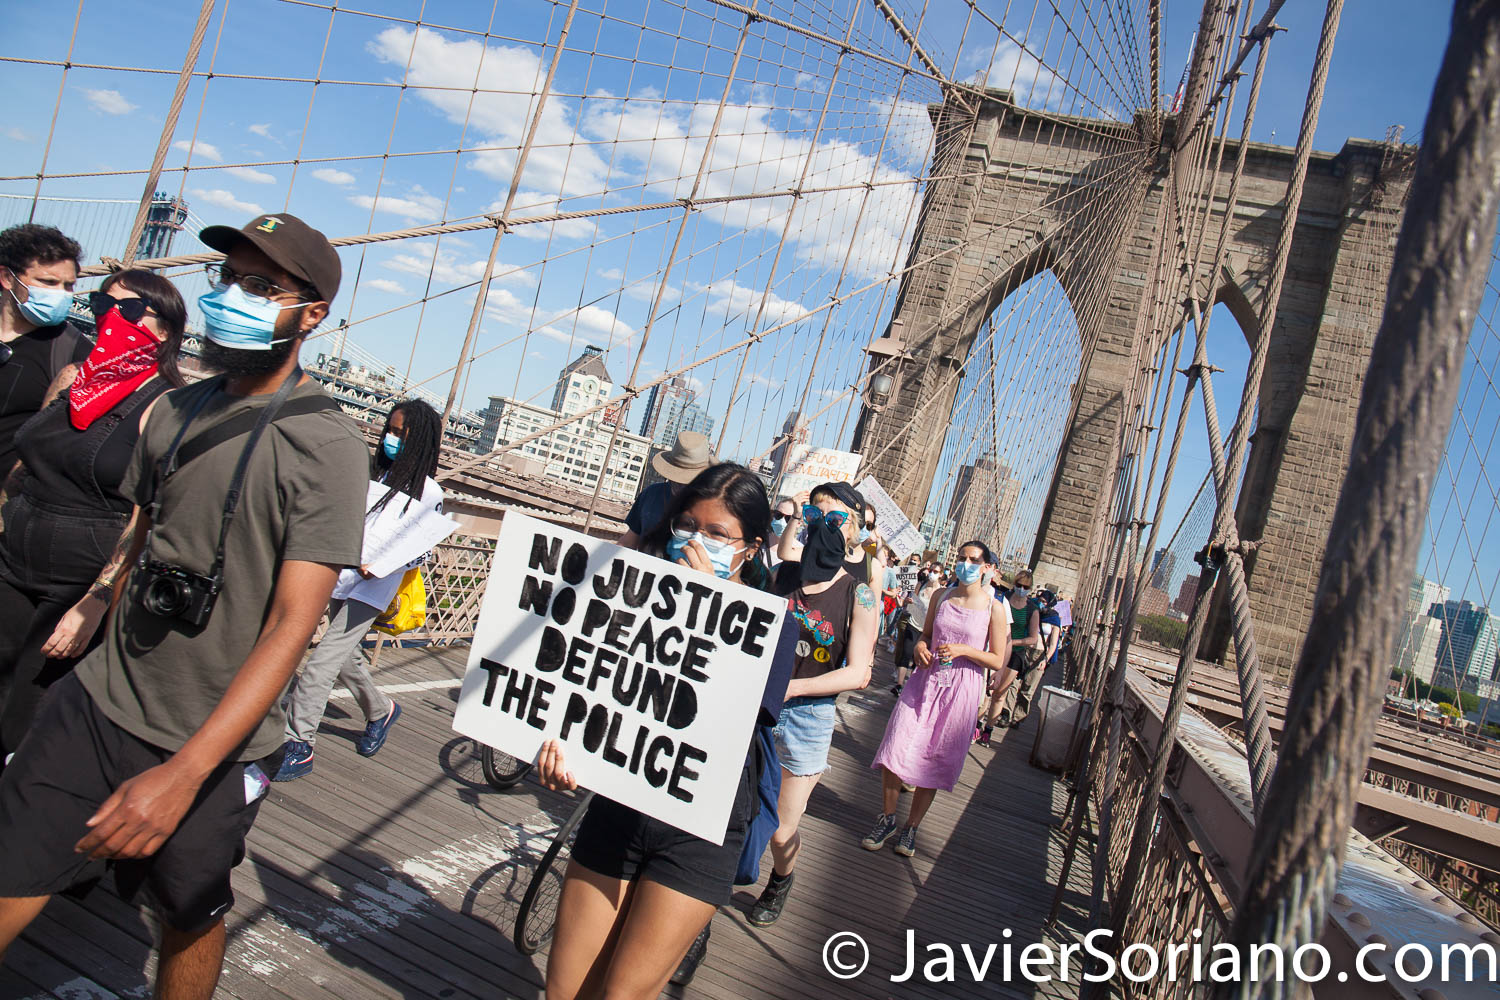 Monday, June 8, 2020. Brooklyn, New York City – Student-led rally and march. Fort Green Park - Borough Hall - City Hall, Manhattan. Photo by Javier Soriano/www.JavierSoriano.com